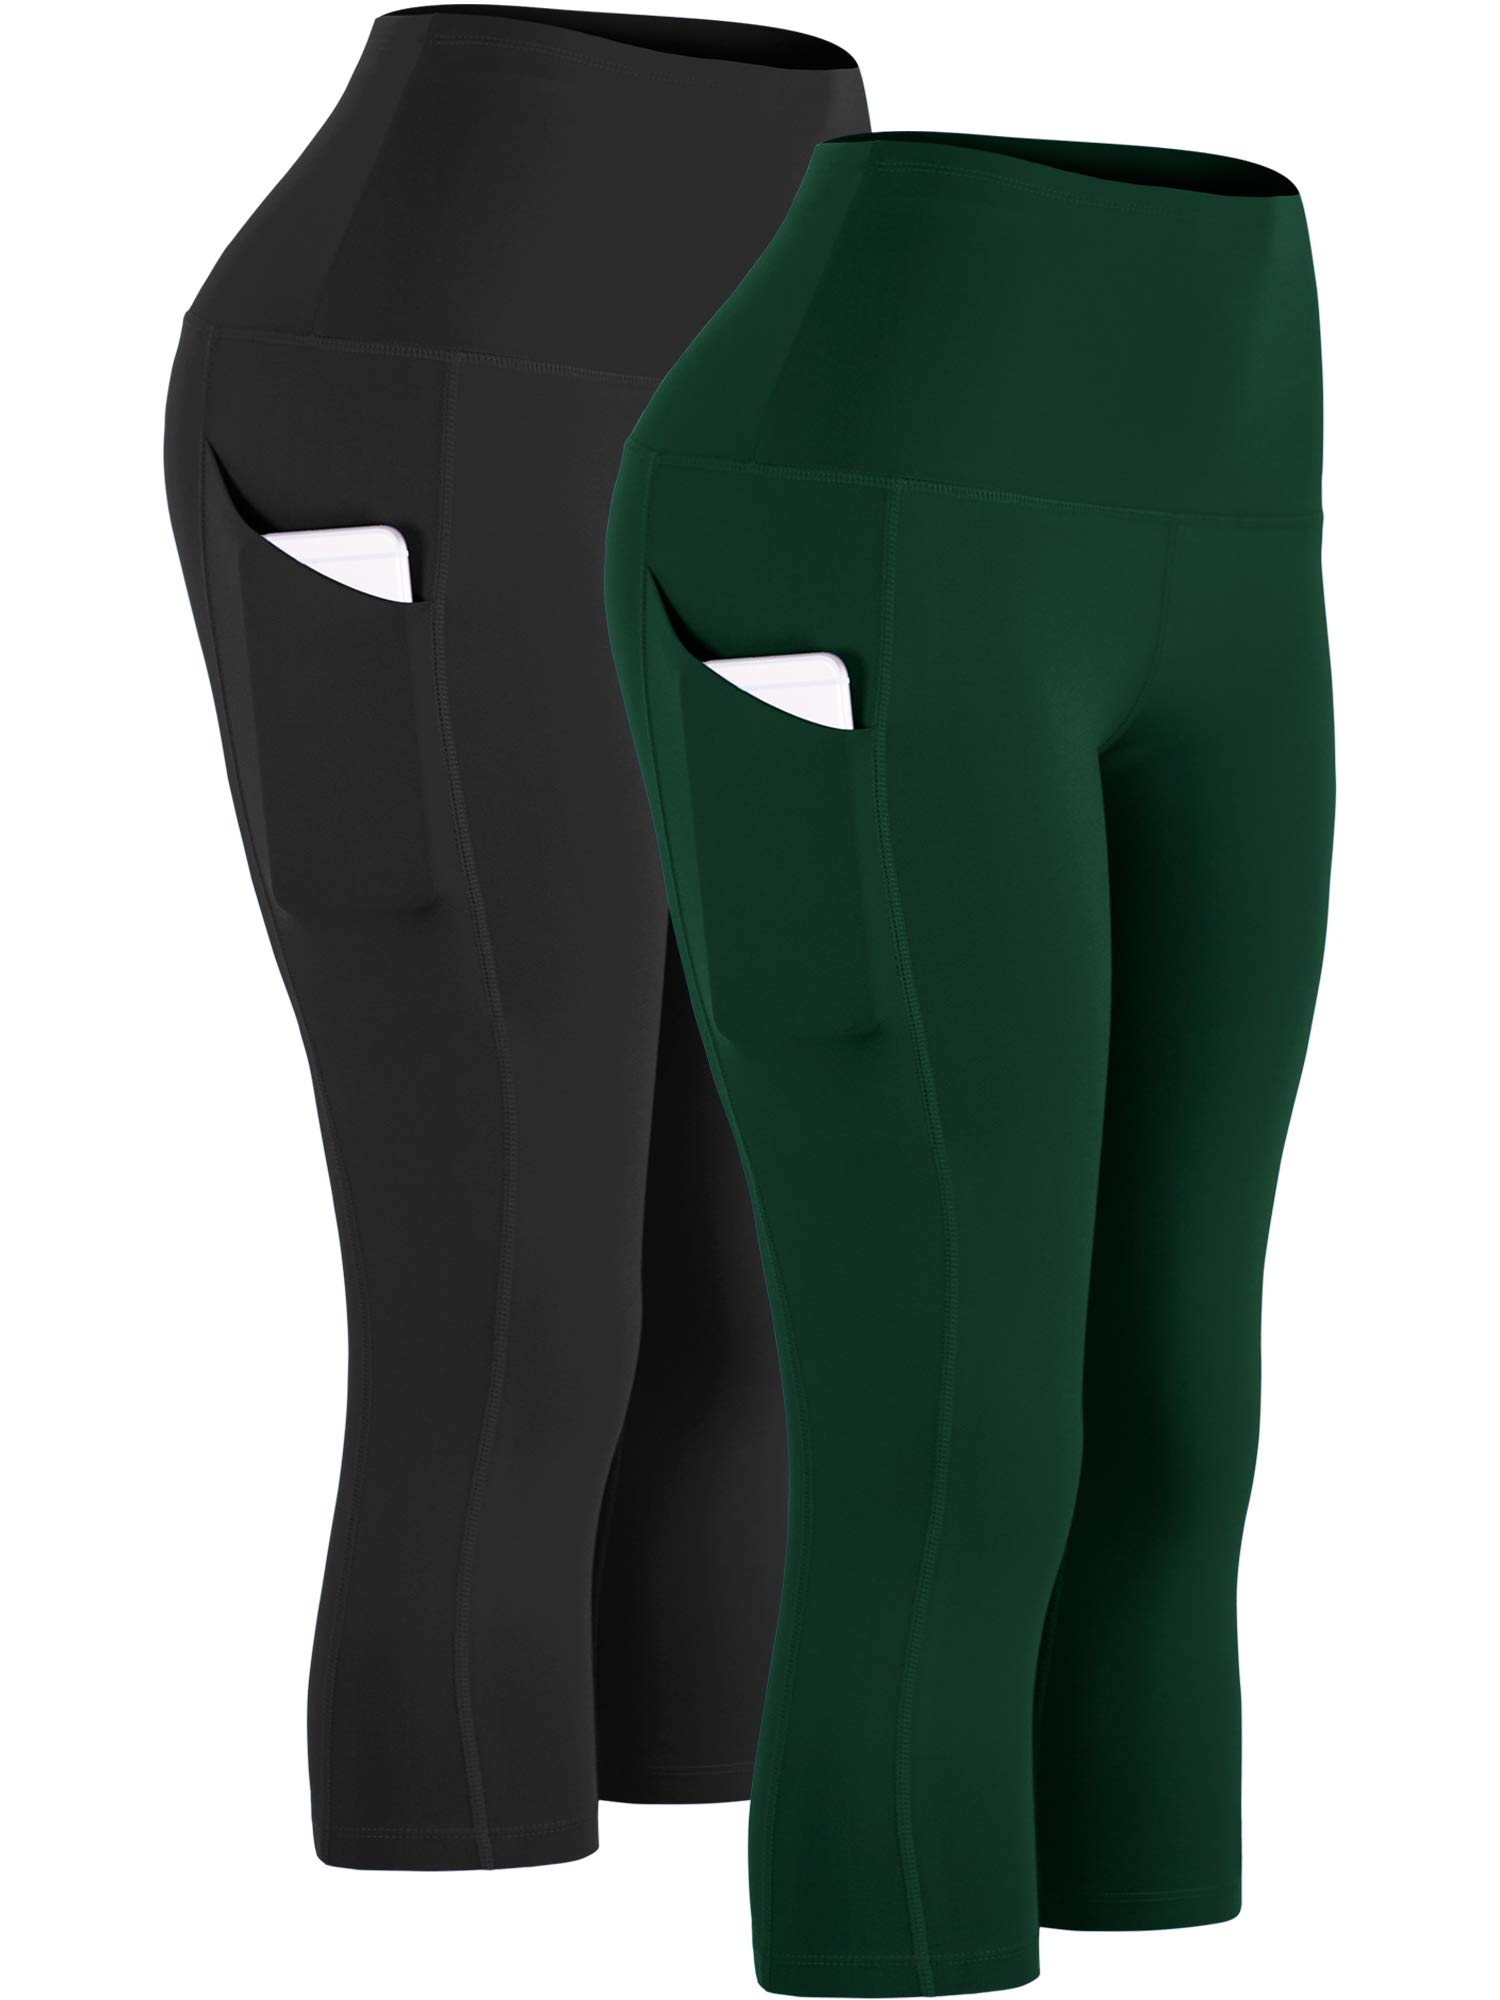 Cadmus Womens High Waist Workout Legging Capris for Yoga w Side Pockets,1109,Black & Dark Green,Medium by Cadmus